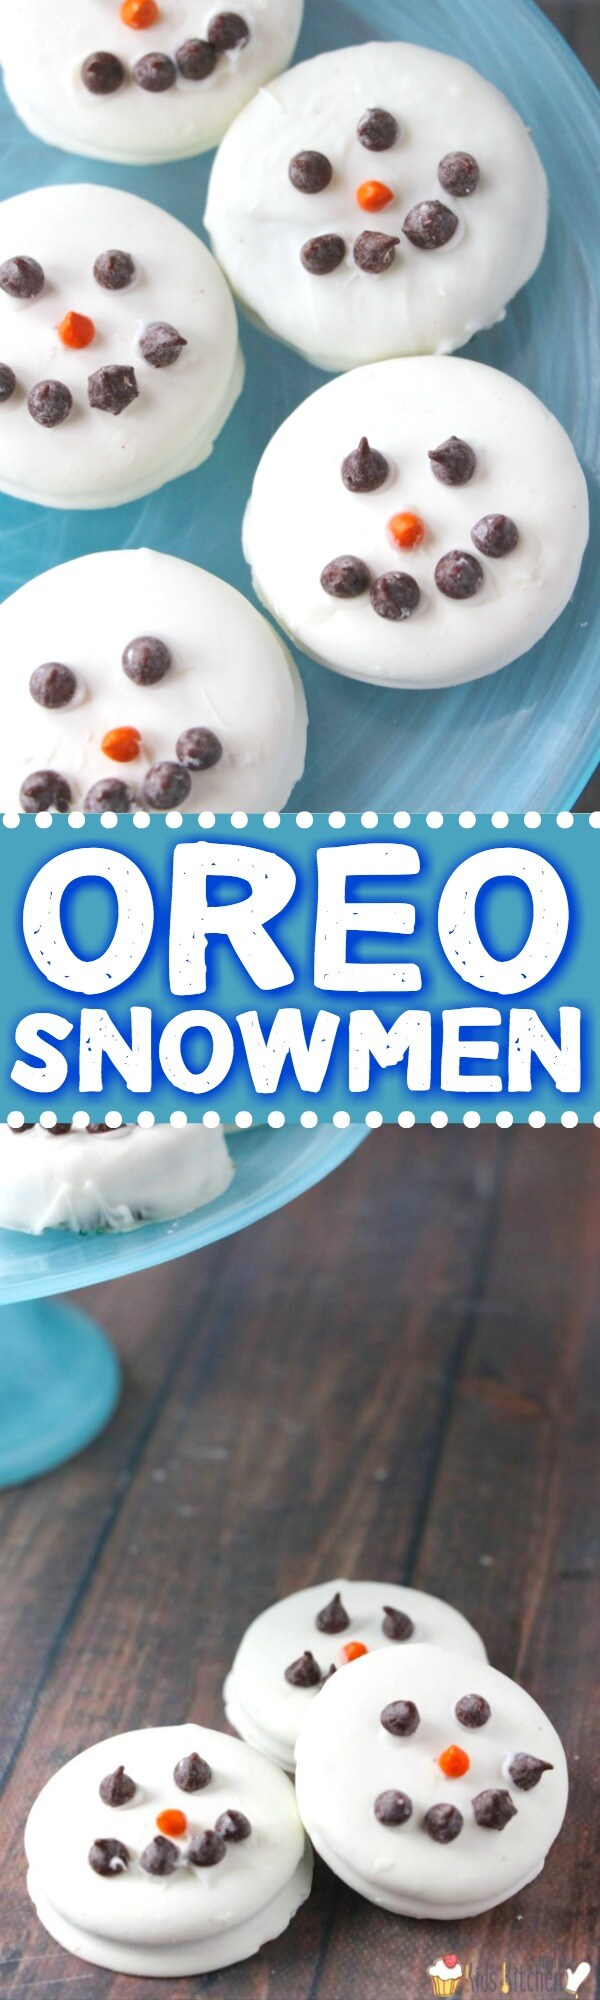 These adorable white chocolate covered Oreo Snowmen are a simple holiday treat that kids of all ages can make!